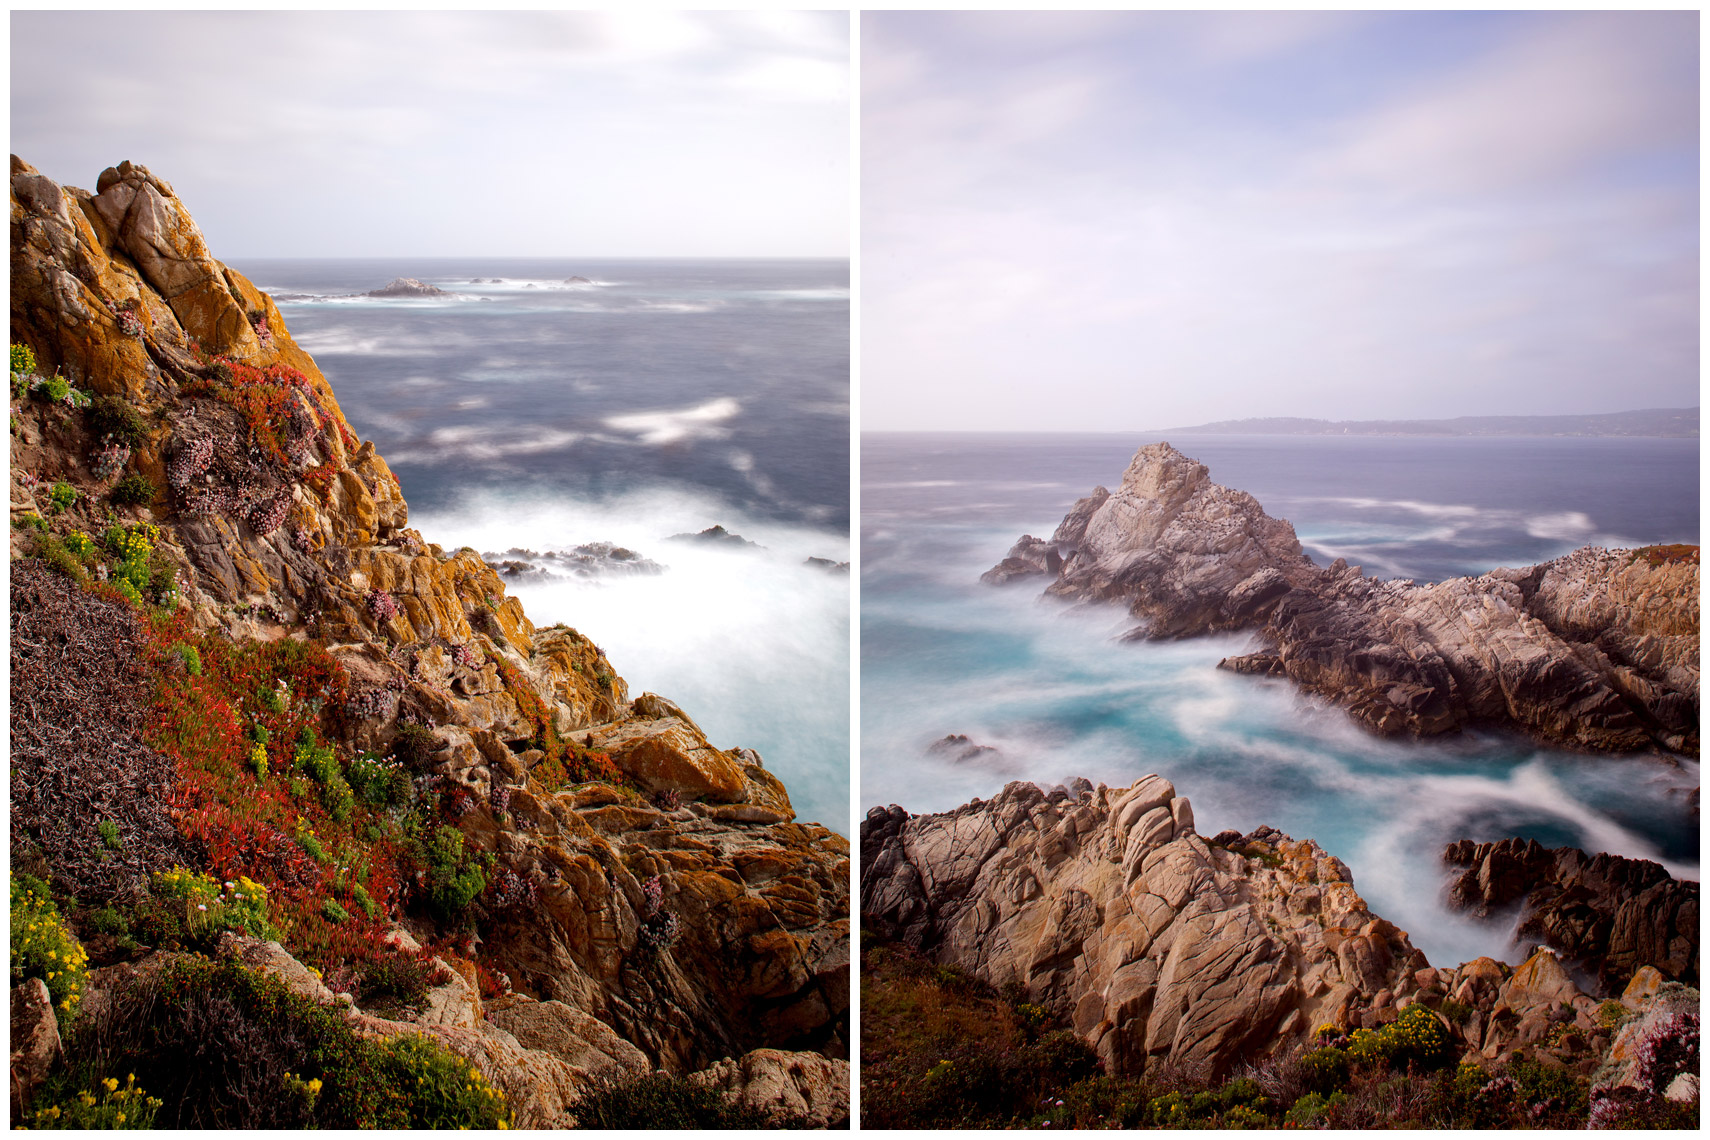 Point Lobos State Reserve in Carmel, California